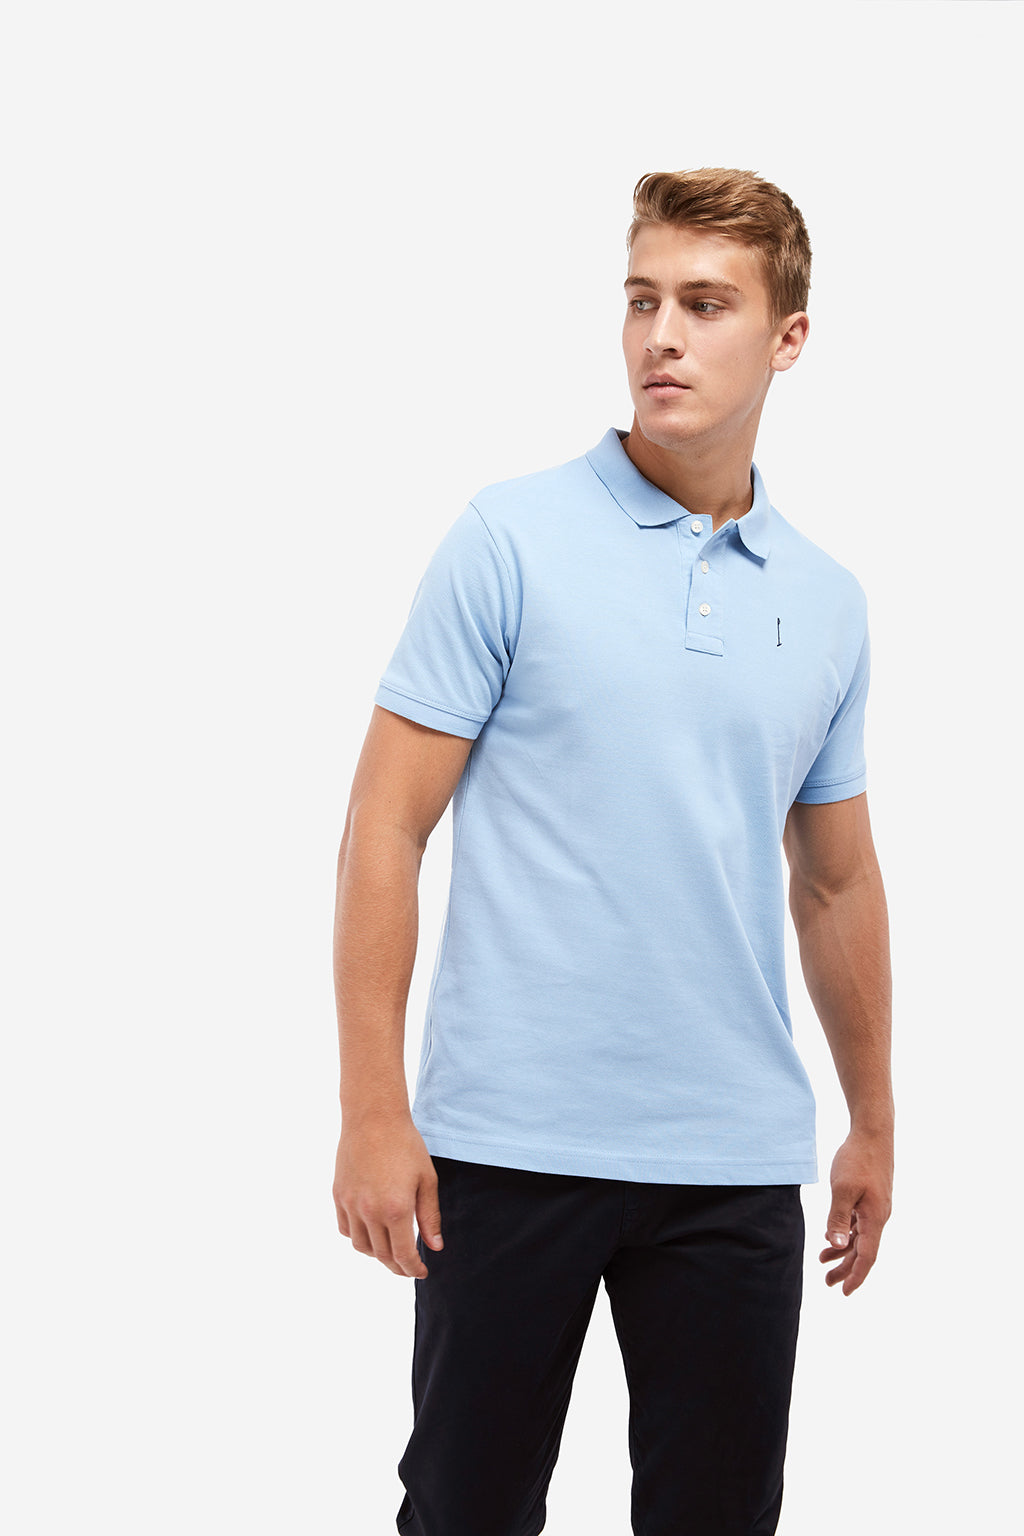 Sky blue Knot polo shirt